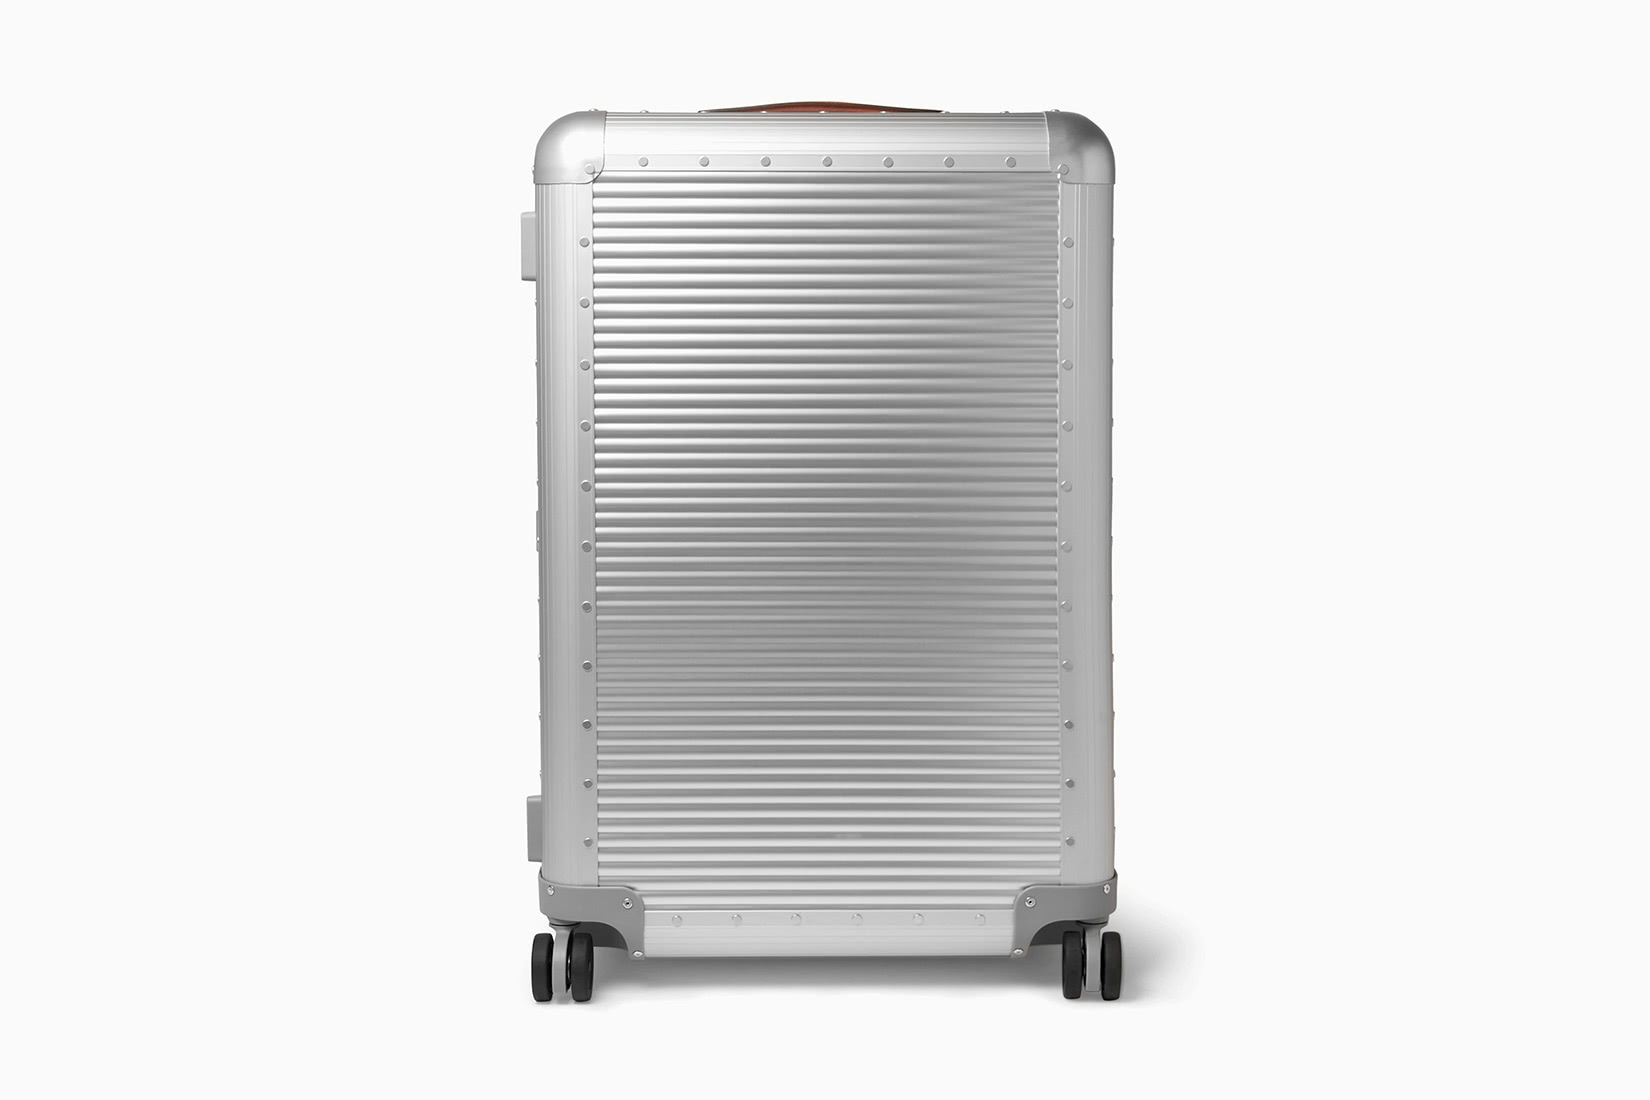 best luggage brands suitcase expensive fabbrica pelletterie milano - Luxe Digital